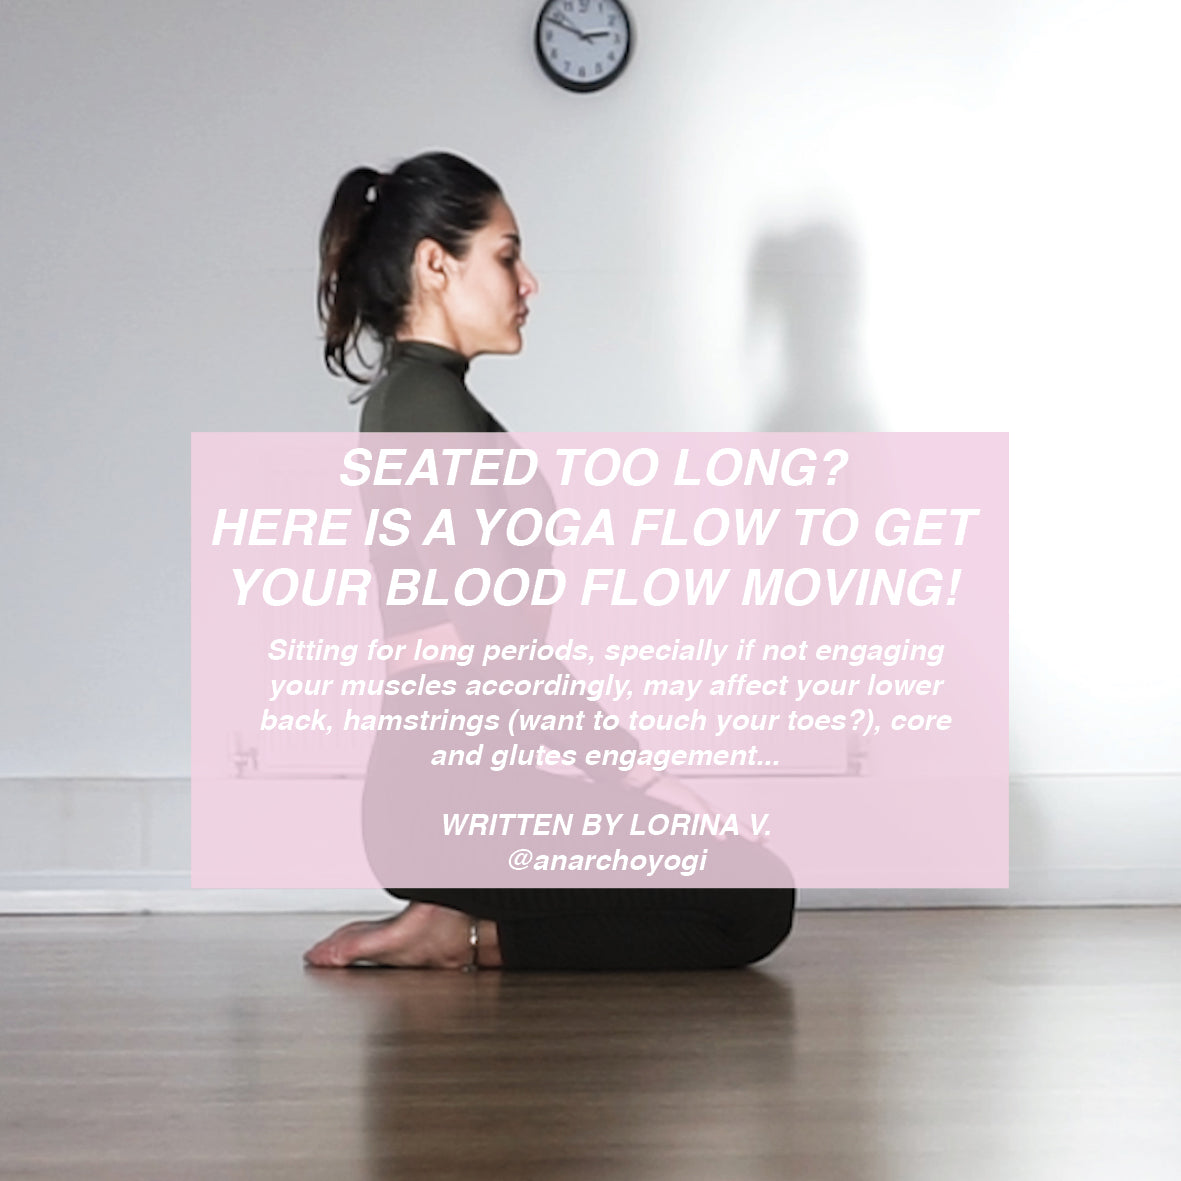 Seated too long? Here is a Yoga flow to get your blood flow moving!